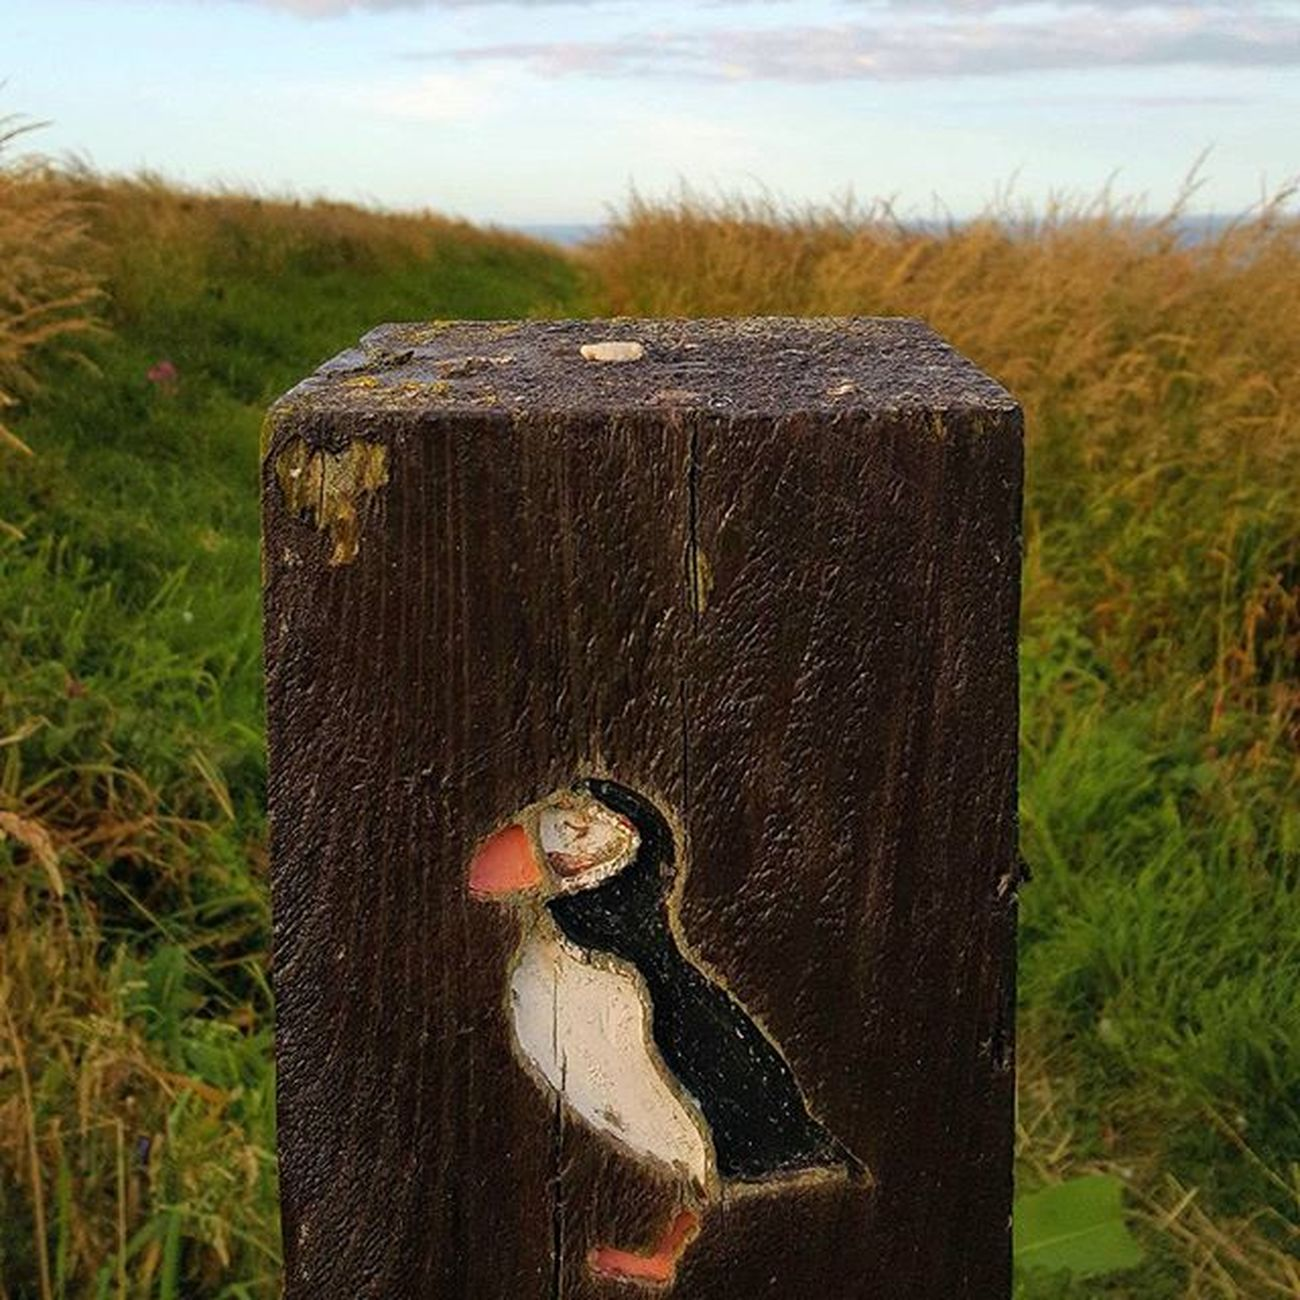 Puffin Trail Puffins Fowlsheugh RSPB Aberdeenshire crawton stonehaven puffinpost coastline bird beautiful scotland visitaberdeen